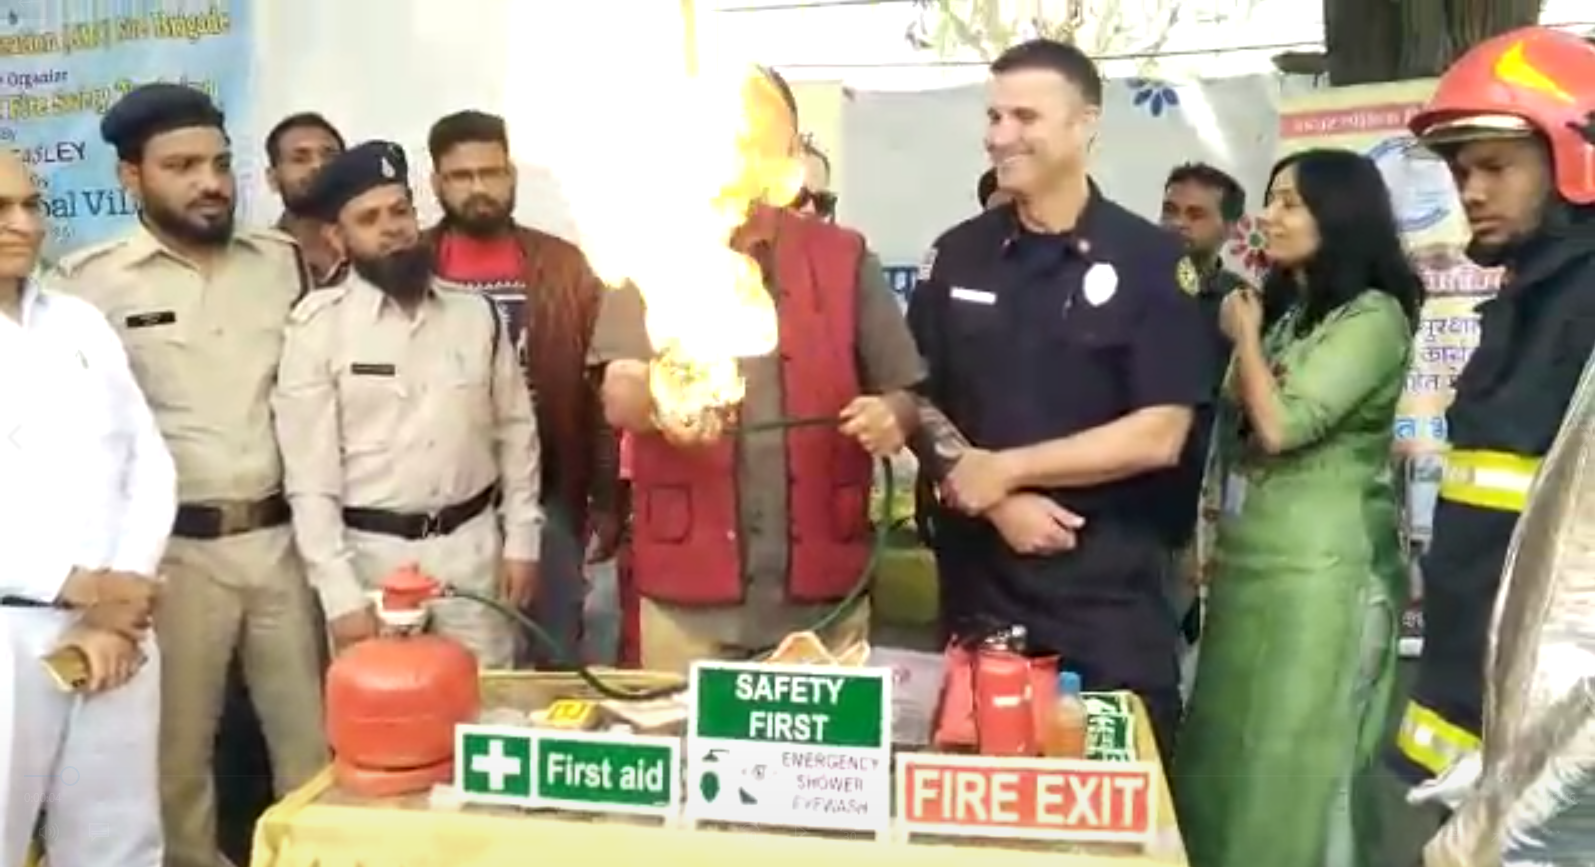 Fire protection program